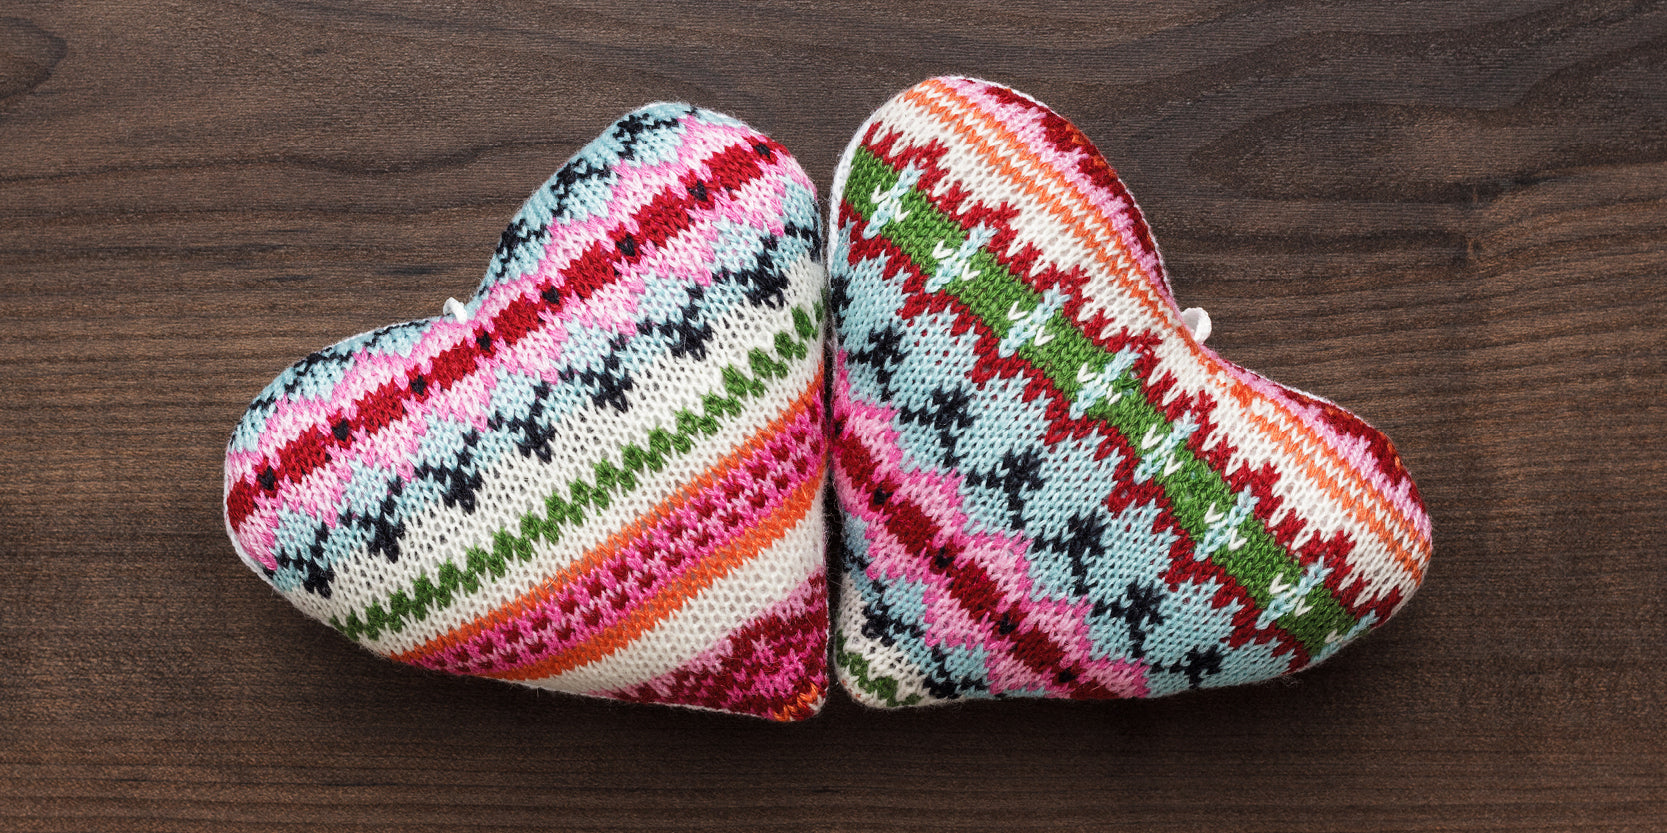 REUSE: Repurpose Old Sweaters and Jumpers - Gift Wrapping - Knitted Hearts